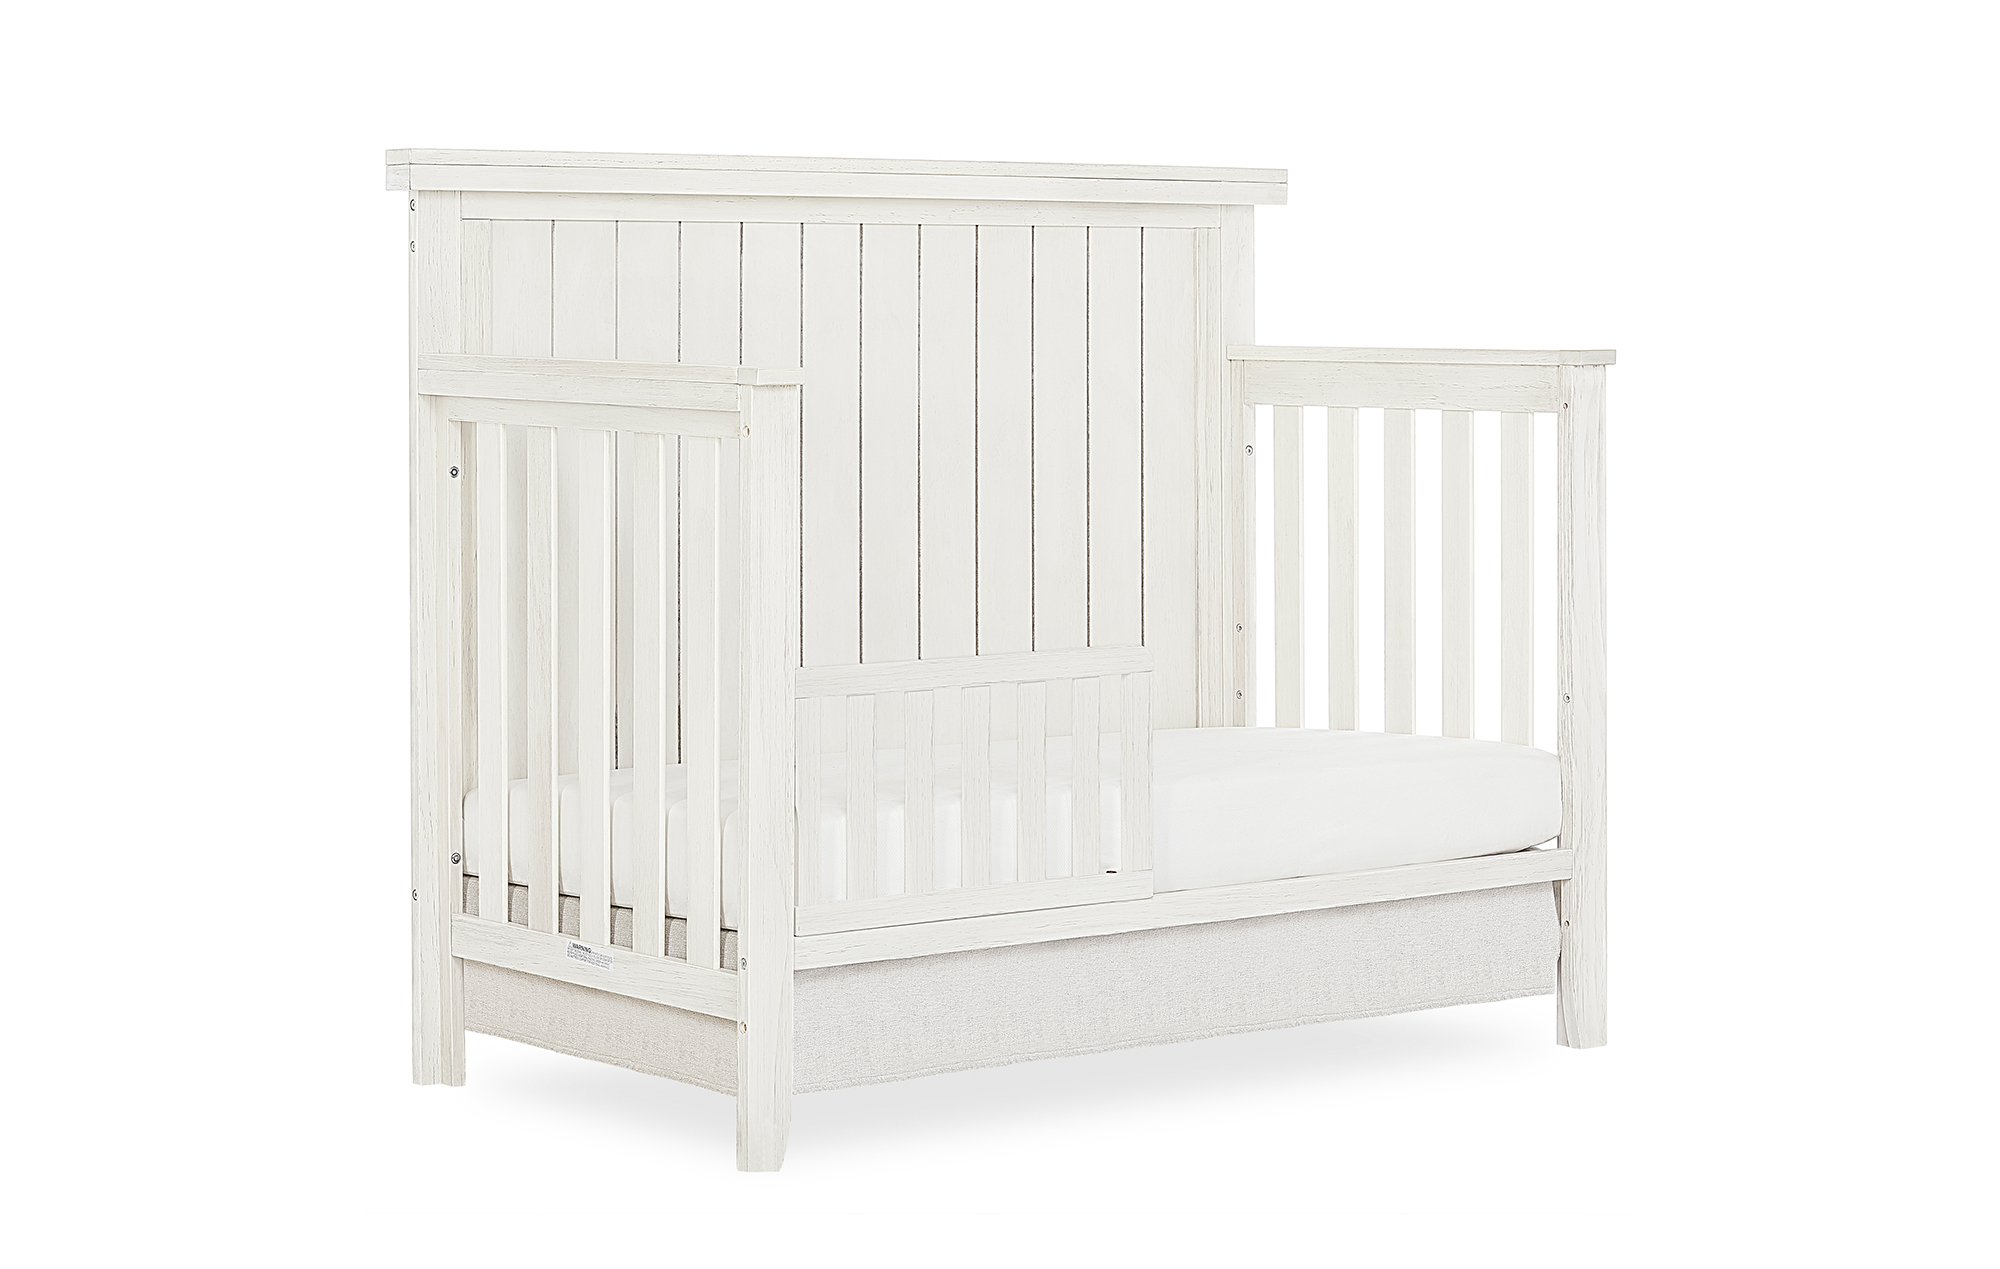 772BR_WWHITE Toddler Bed